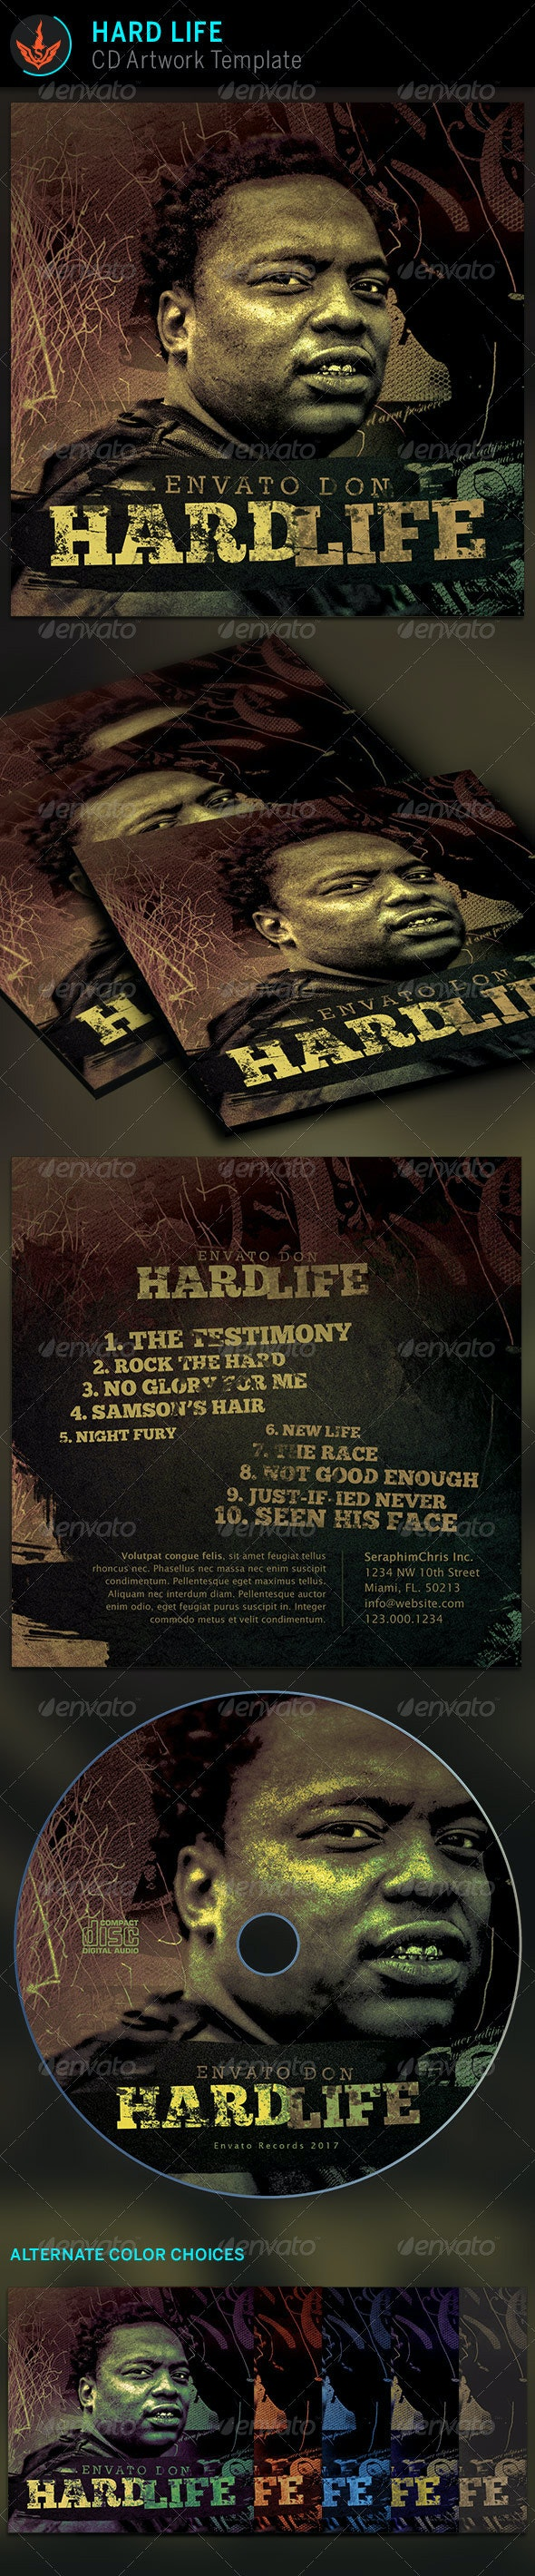 Hard Life CD Artwork template